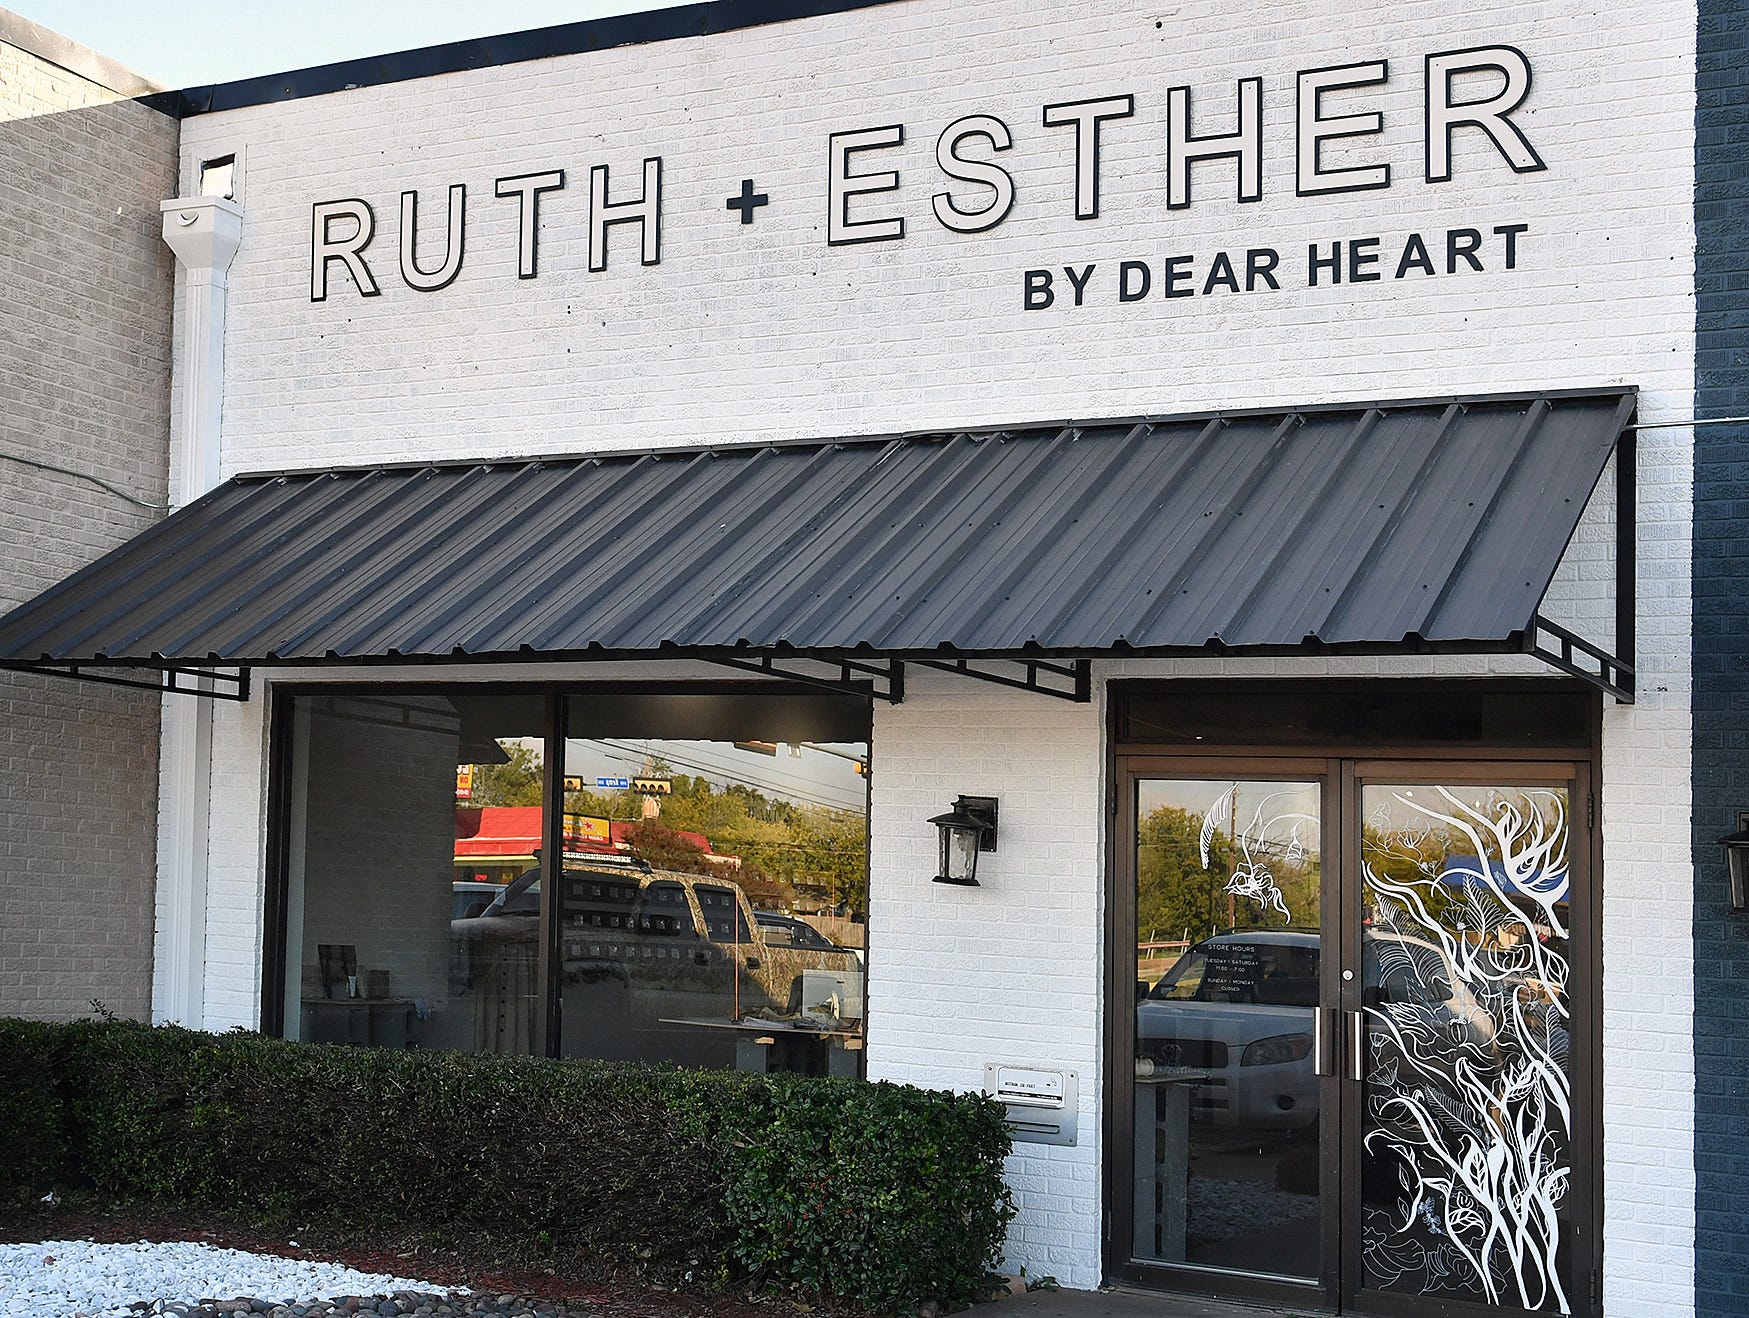 Ruth & Esther is a new lifestyle boutique owned by Nichole Kirk, creator of Dear Heart, and is located on Kemp Boulevard.